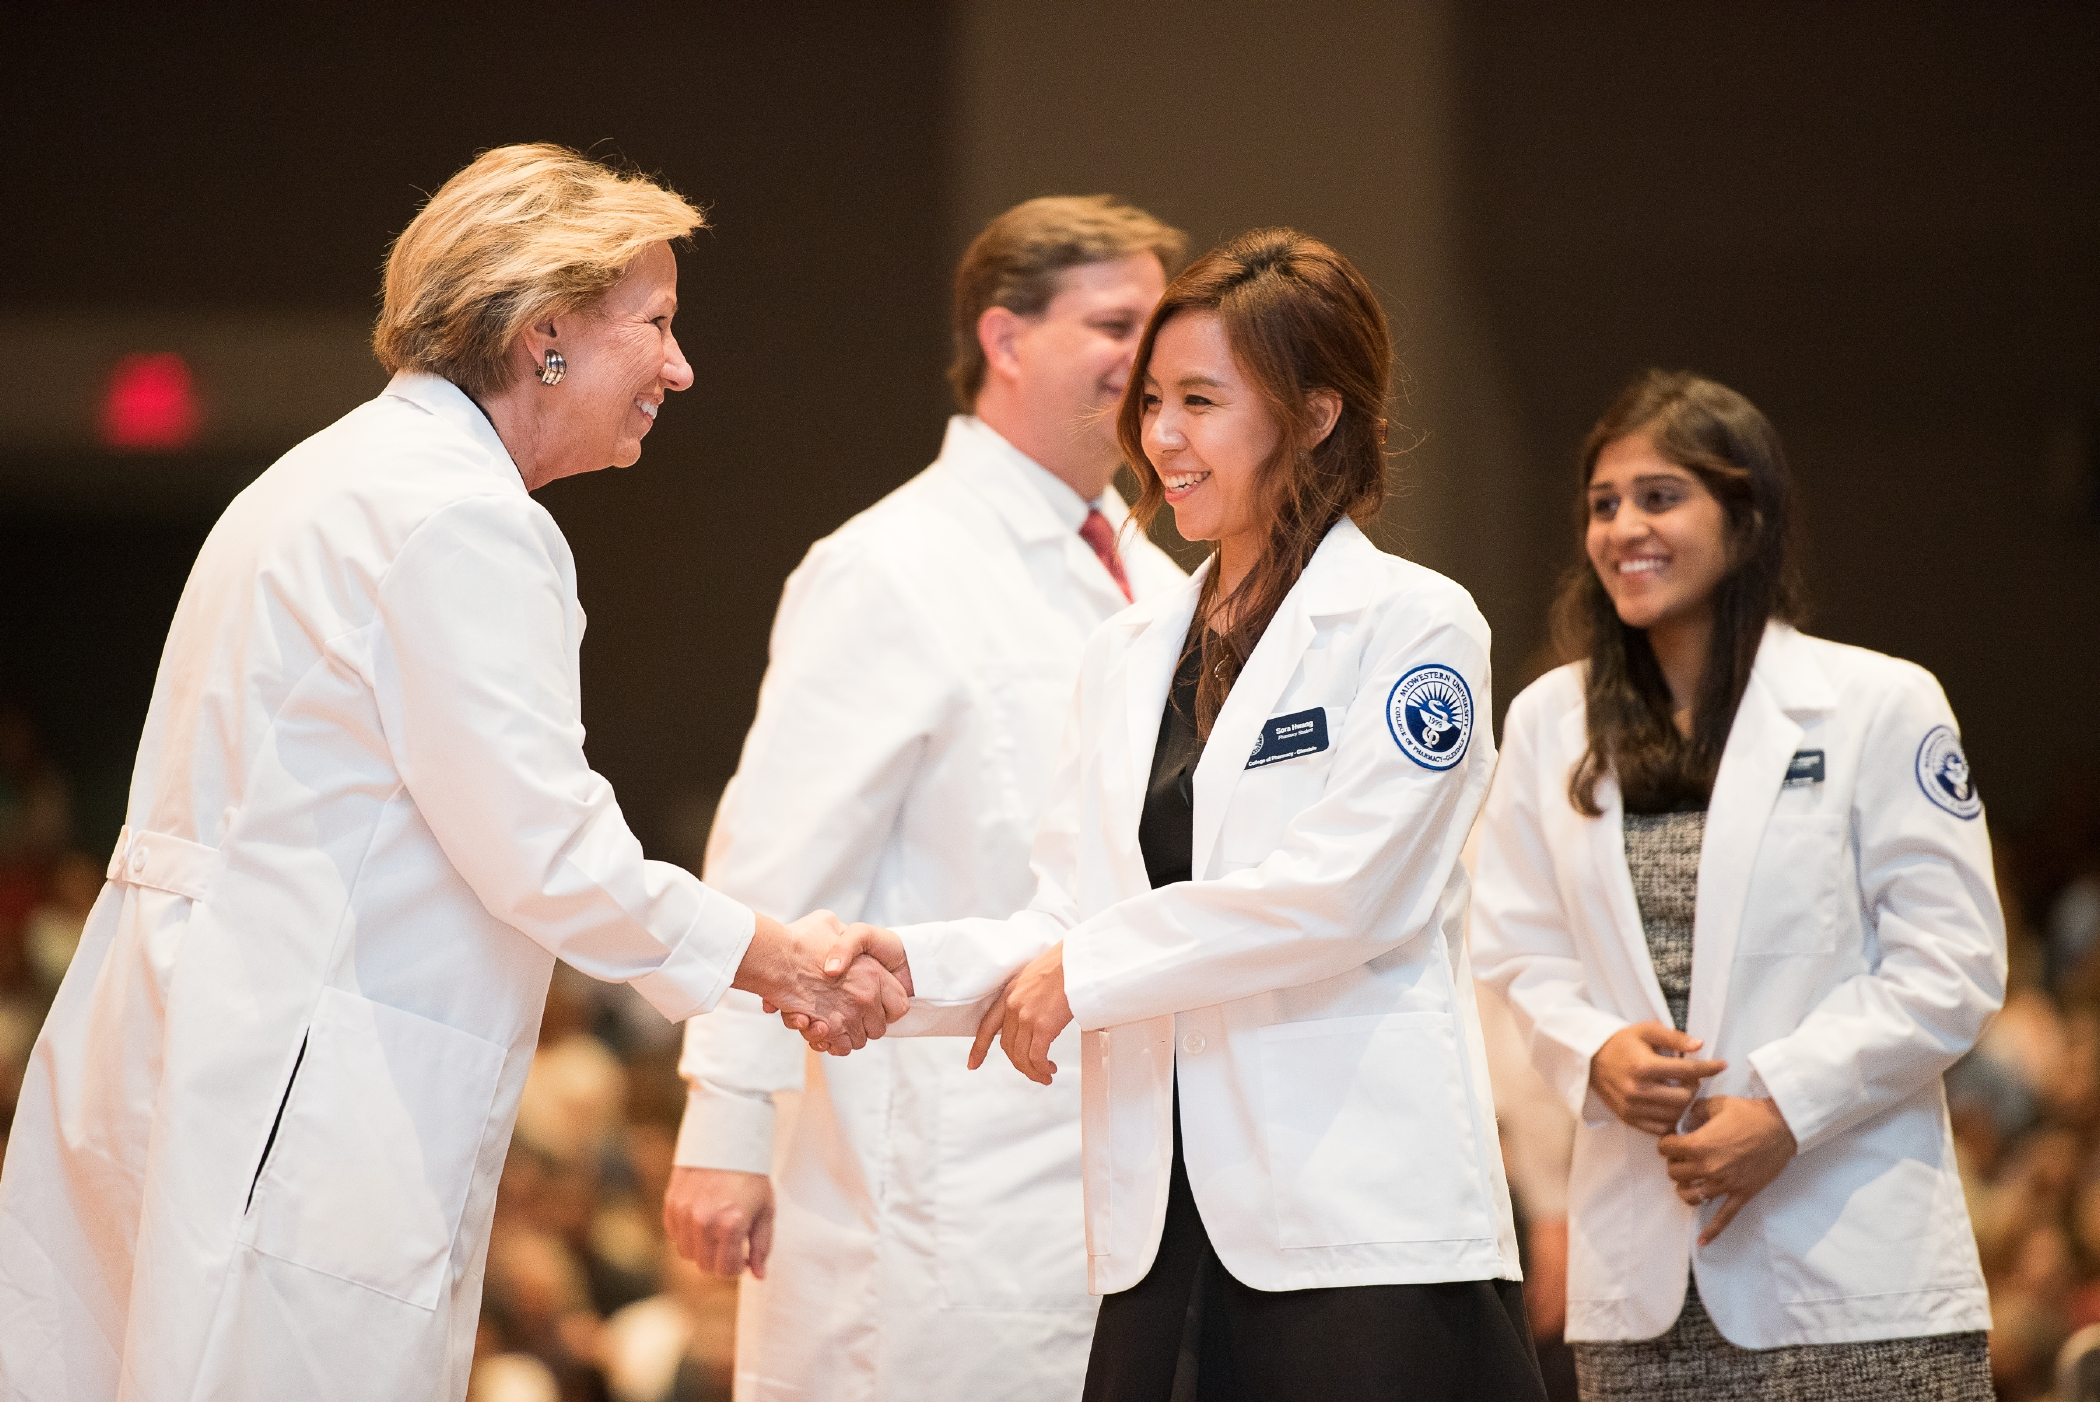 White Coat Ceremonies Mark Start of Professional Careers